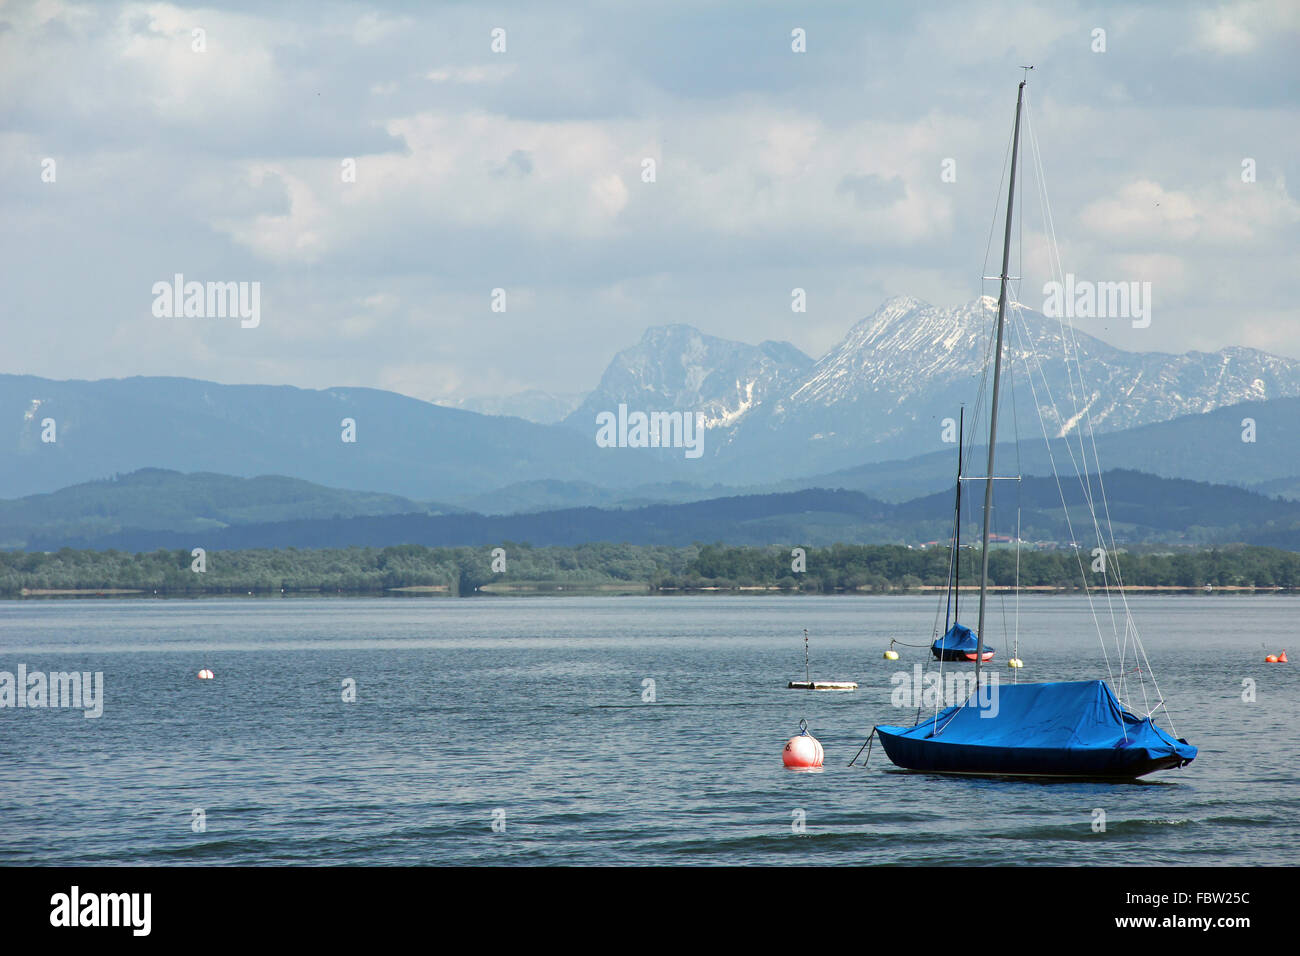 Sailboats on the Chiemsee Stock Photo